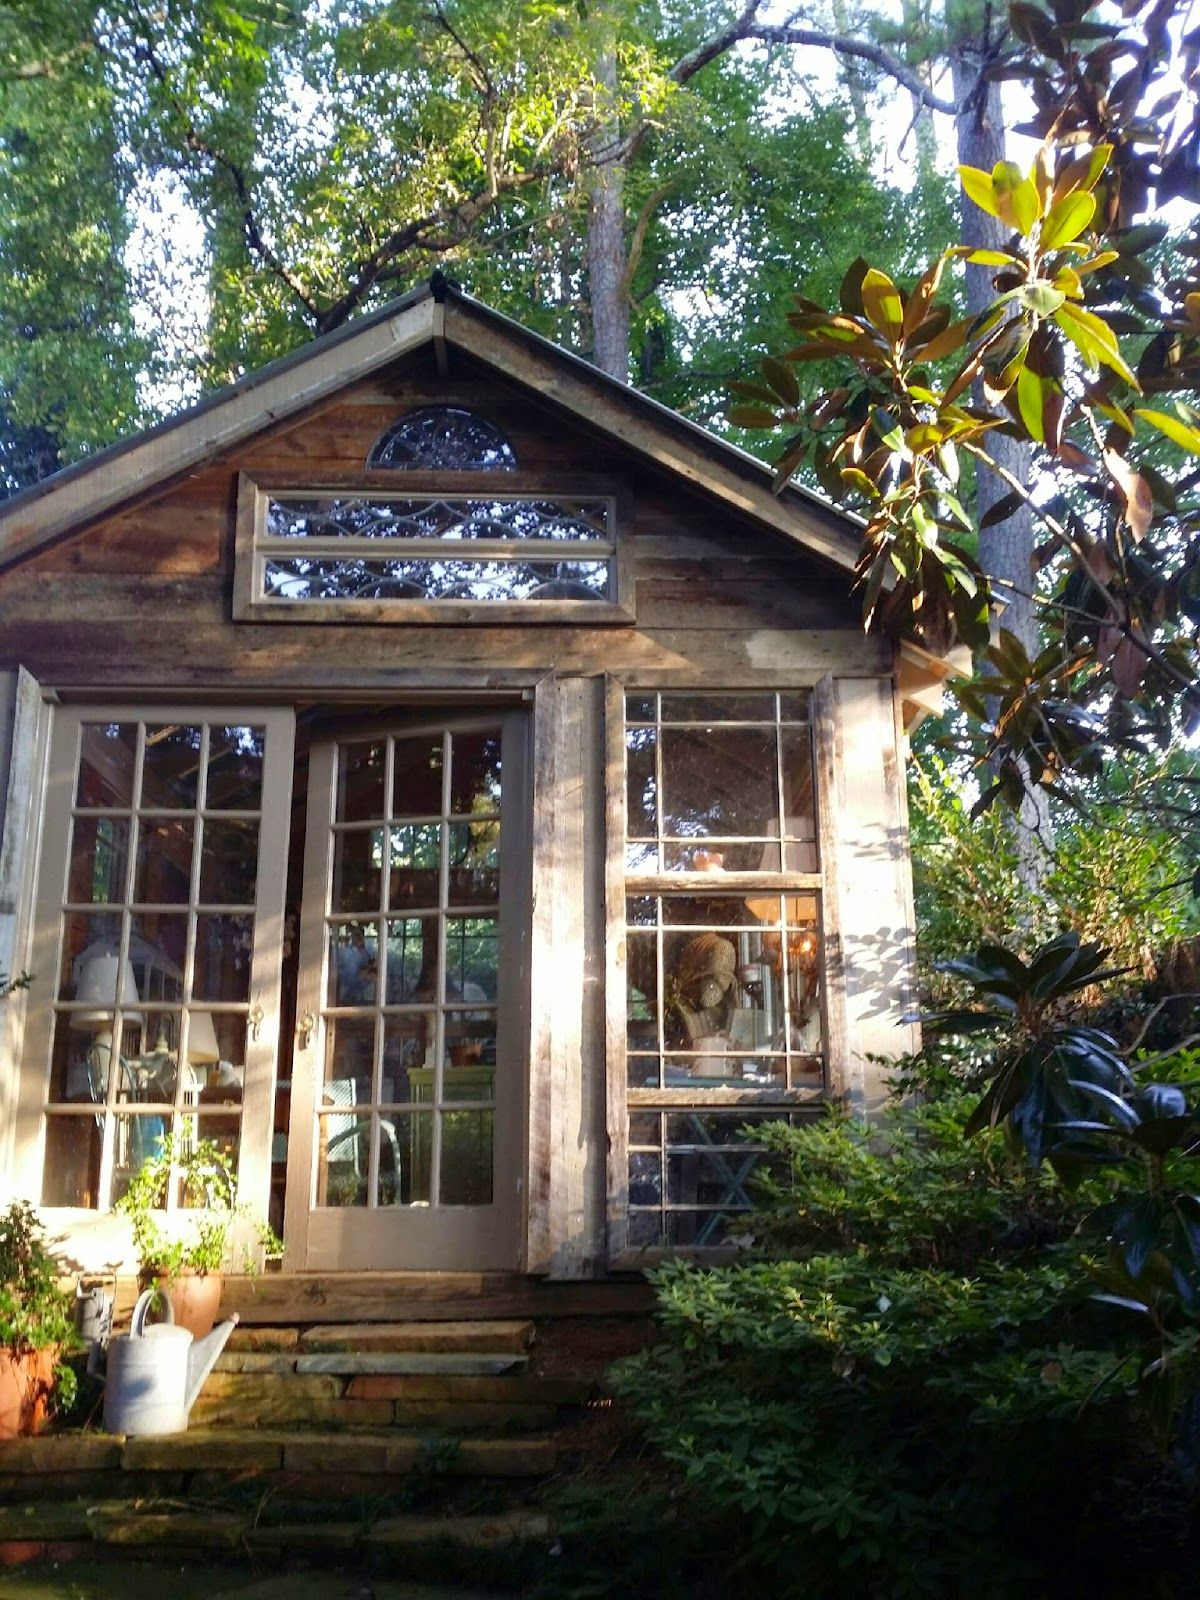 Design A Greenhouse With Local And Repurposed Materials Don T